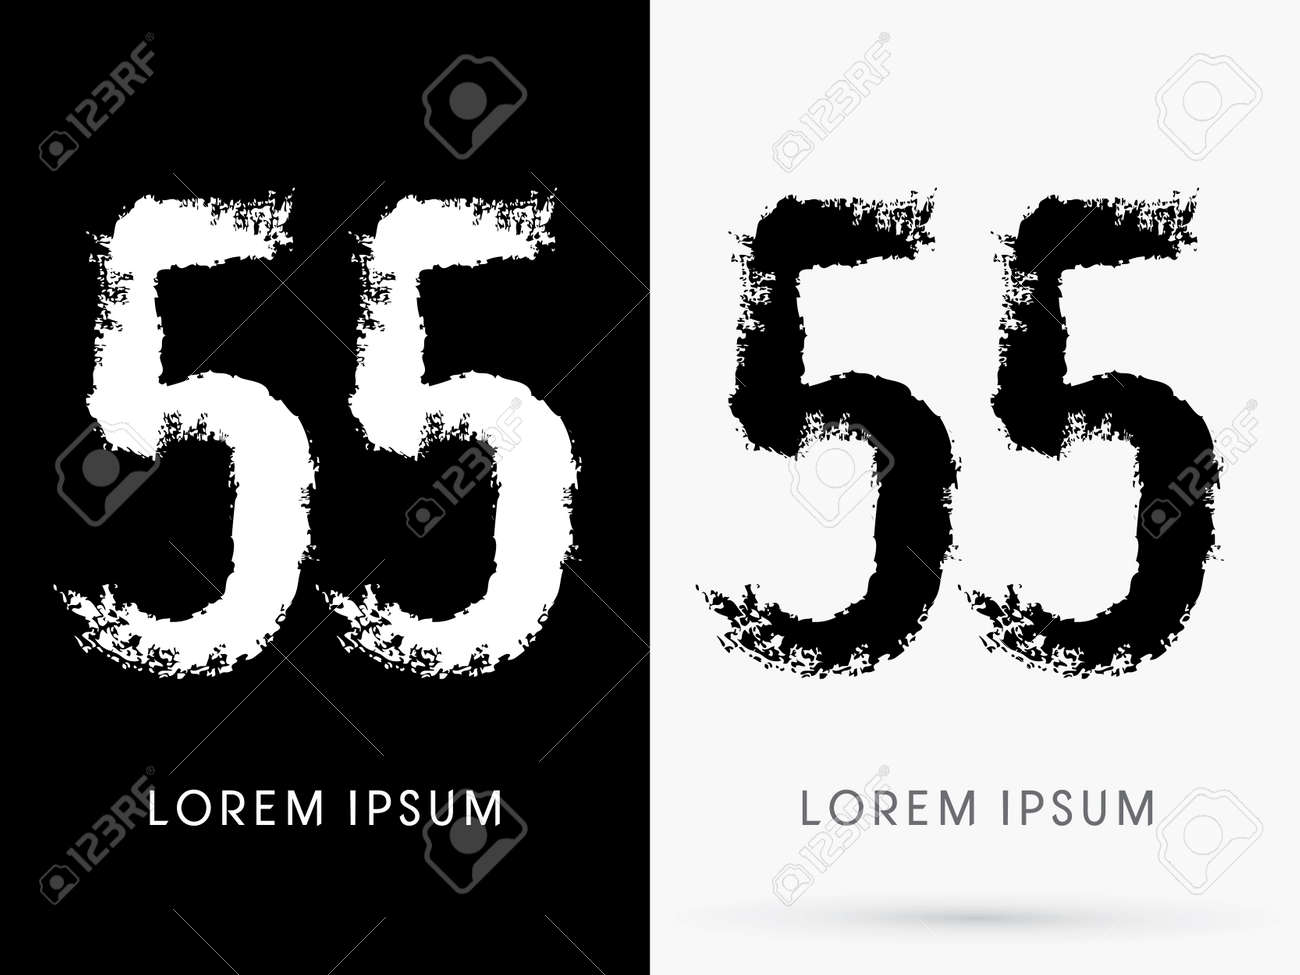 55 Number Grunge Brush Freestyle Font Designed Using Black And White Handwriting Line Shape Logo Symbol